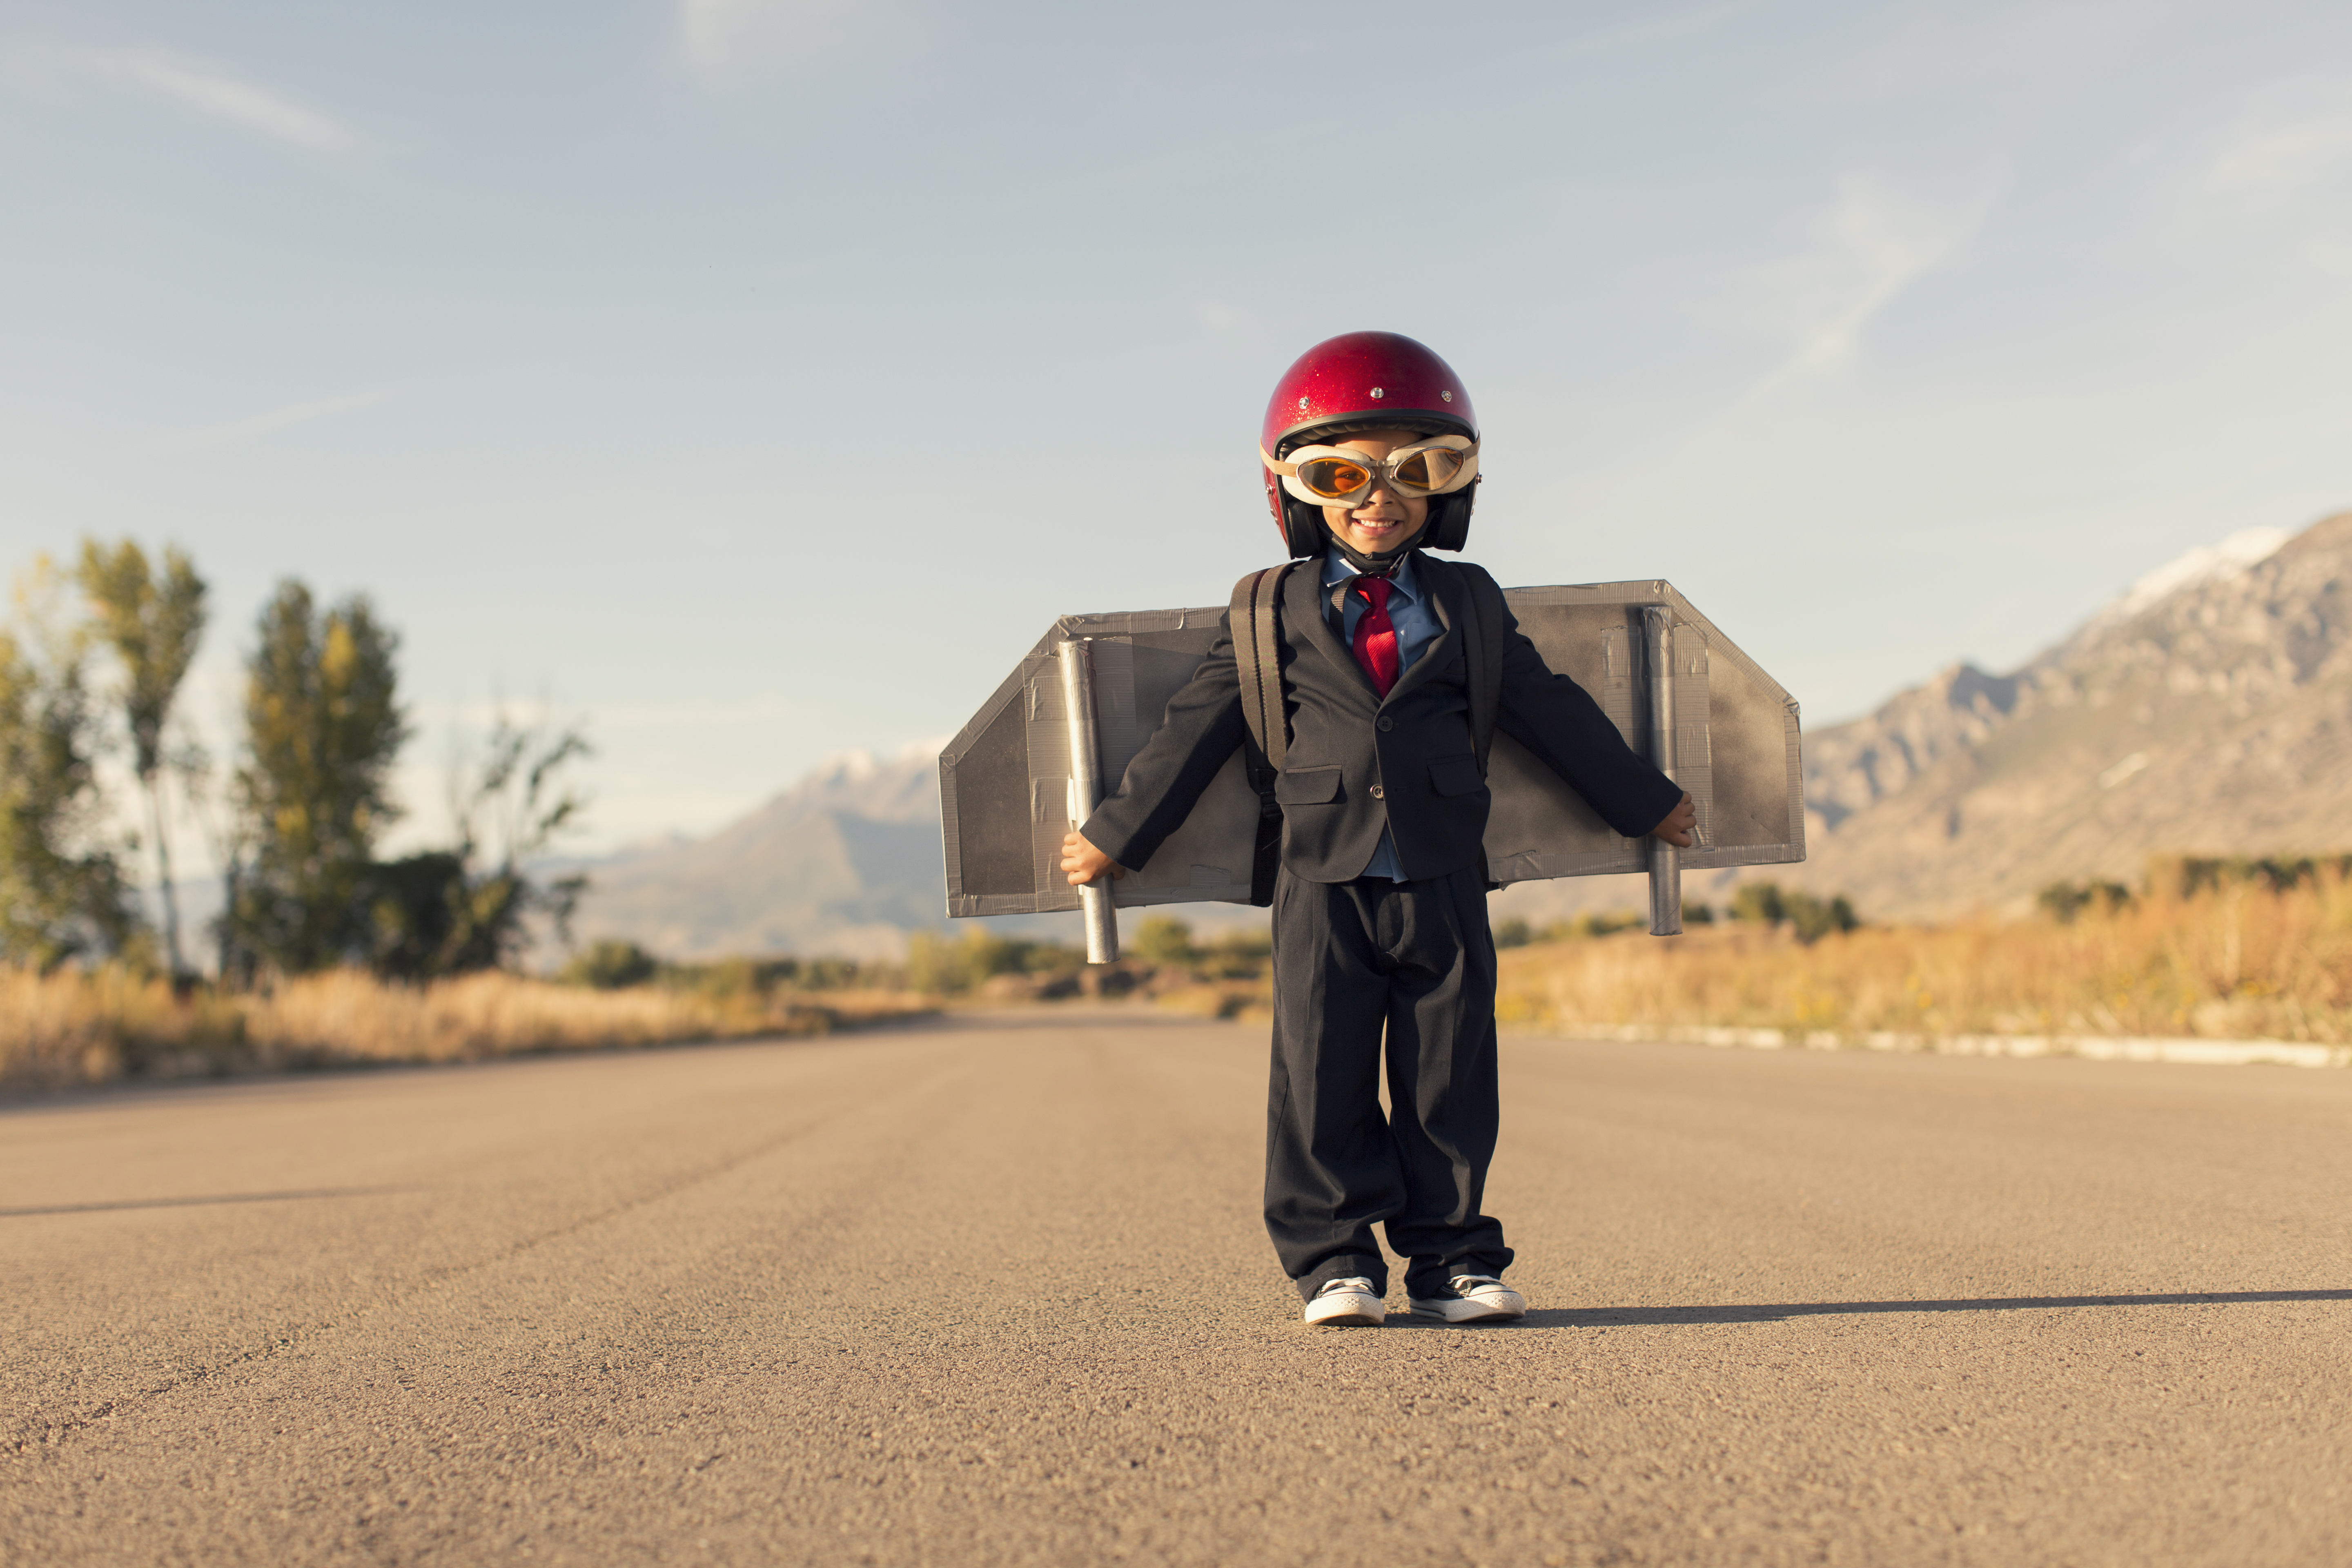 A young business boy is ready to take his business ideas to new levels in the stratosphere. He is wearing a homemade jet pack, race helmet and flying goggles while standing on a rural road in Utah, USA.